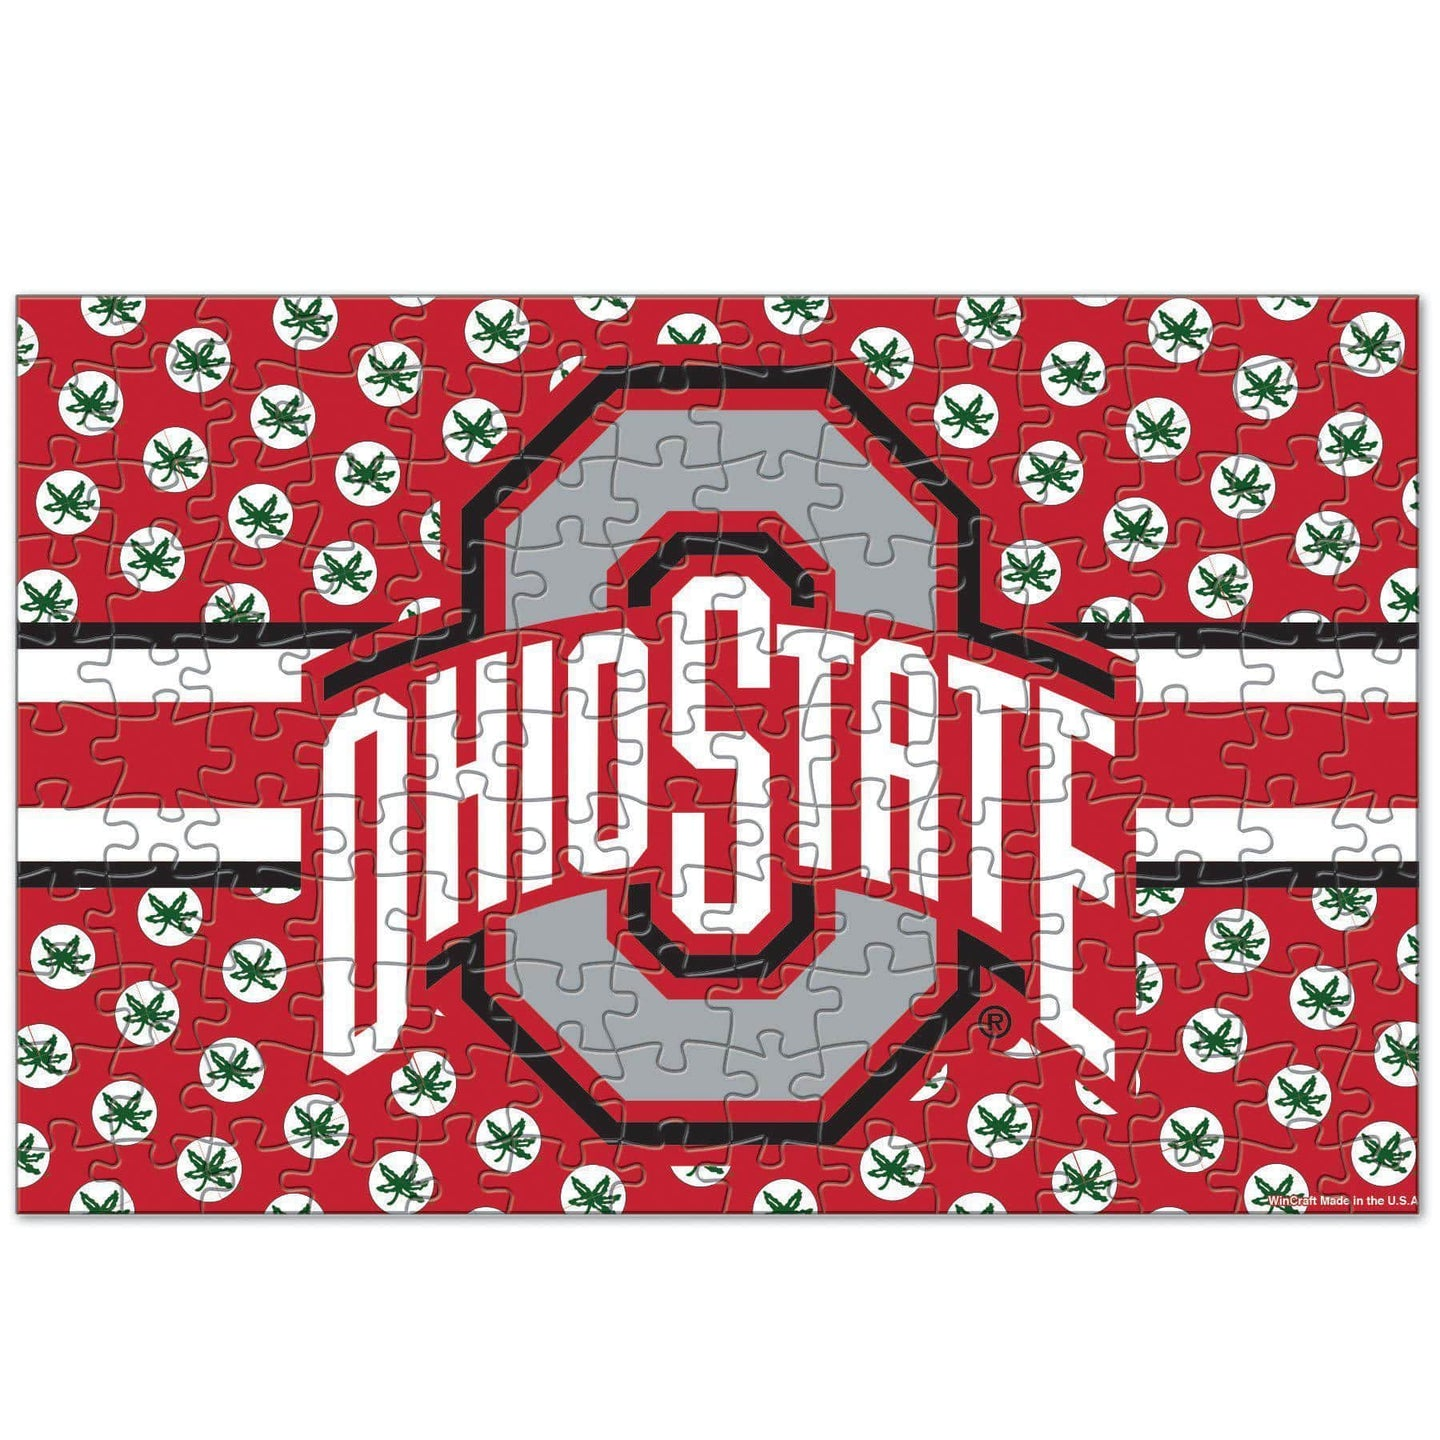 150 Piece Athletic O puzzle with Helmet Stripes and Buckeye Leaves - Conrads College Gifts